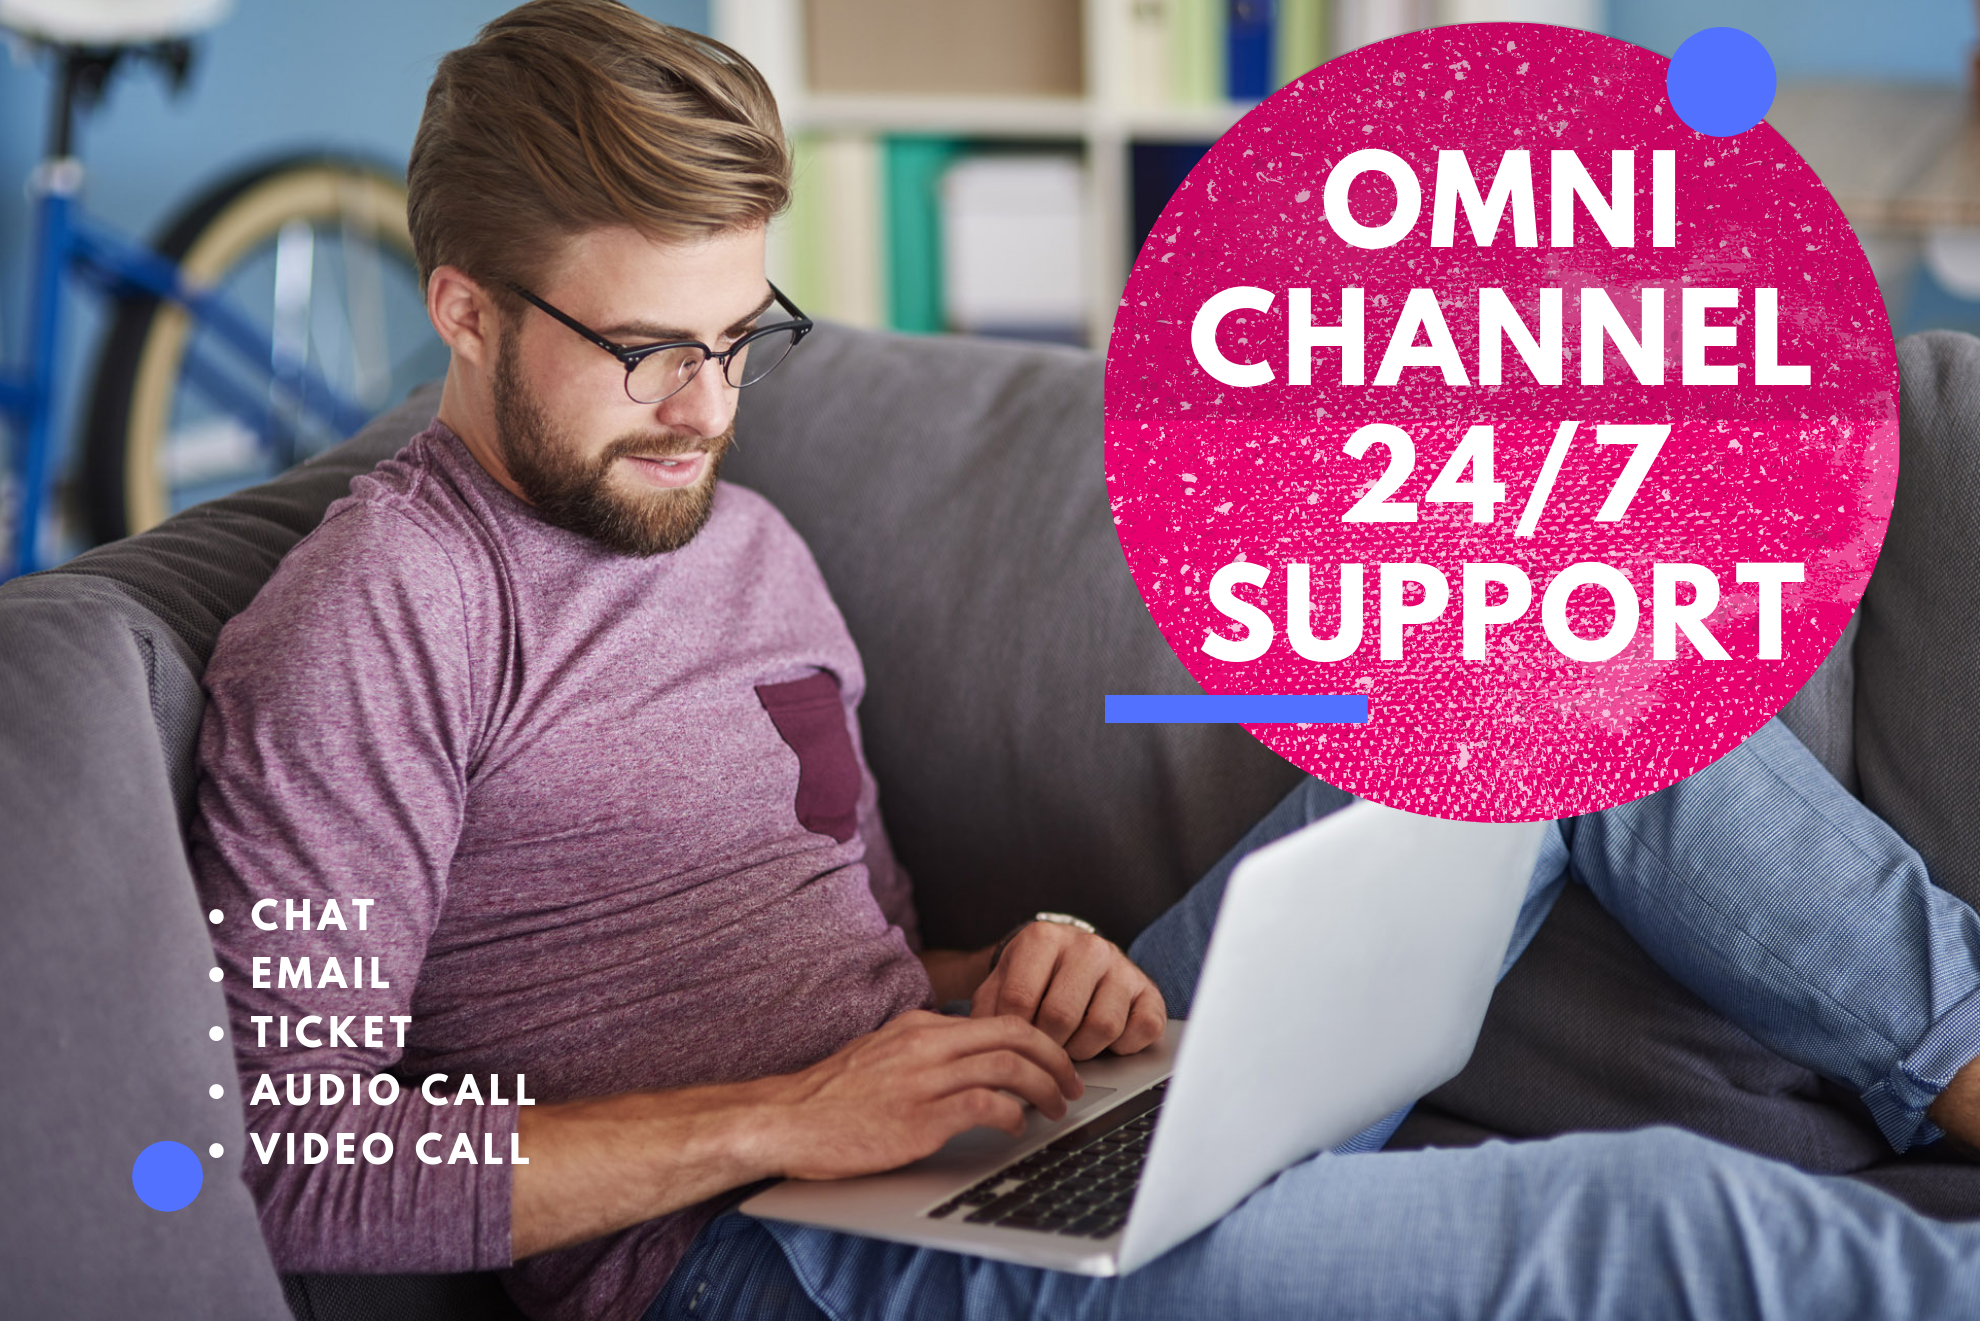 Omnichannel Customer Support from Syrow™